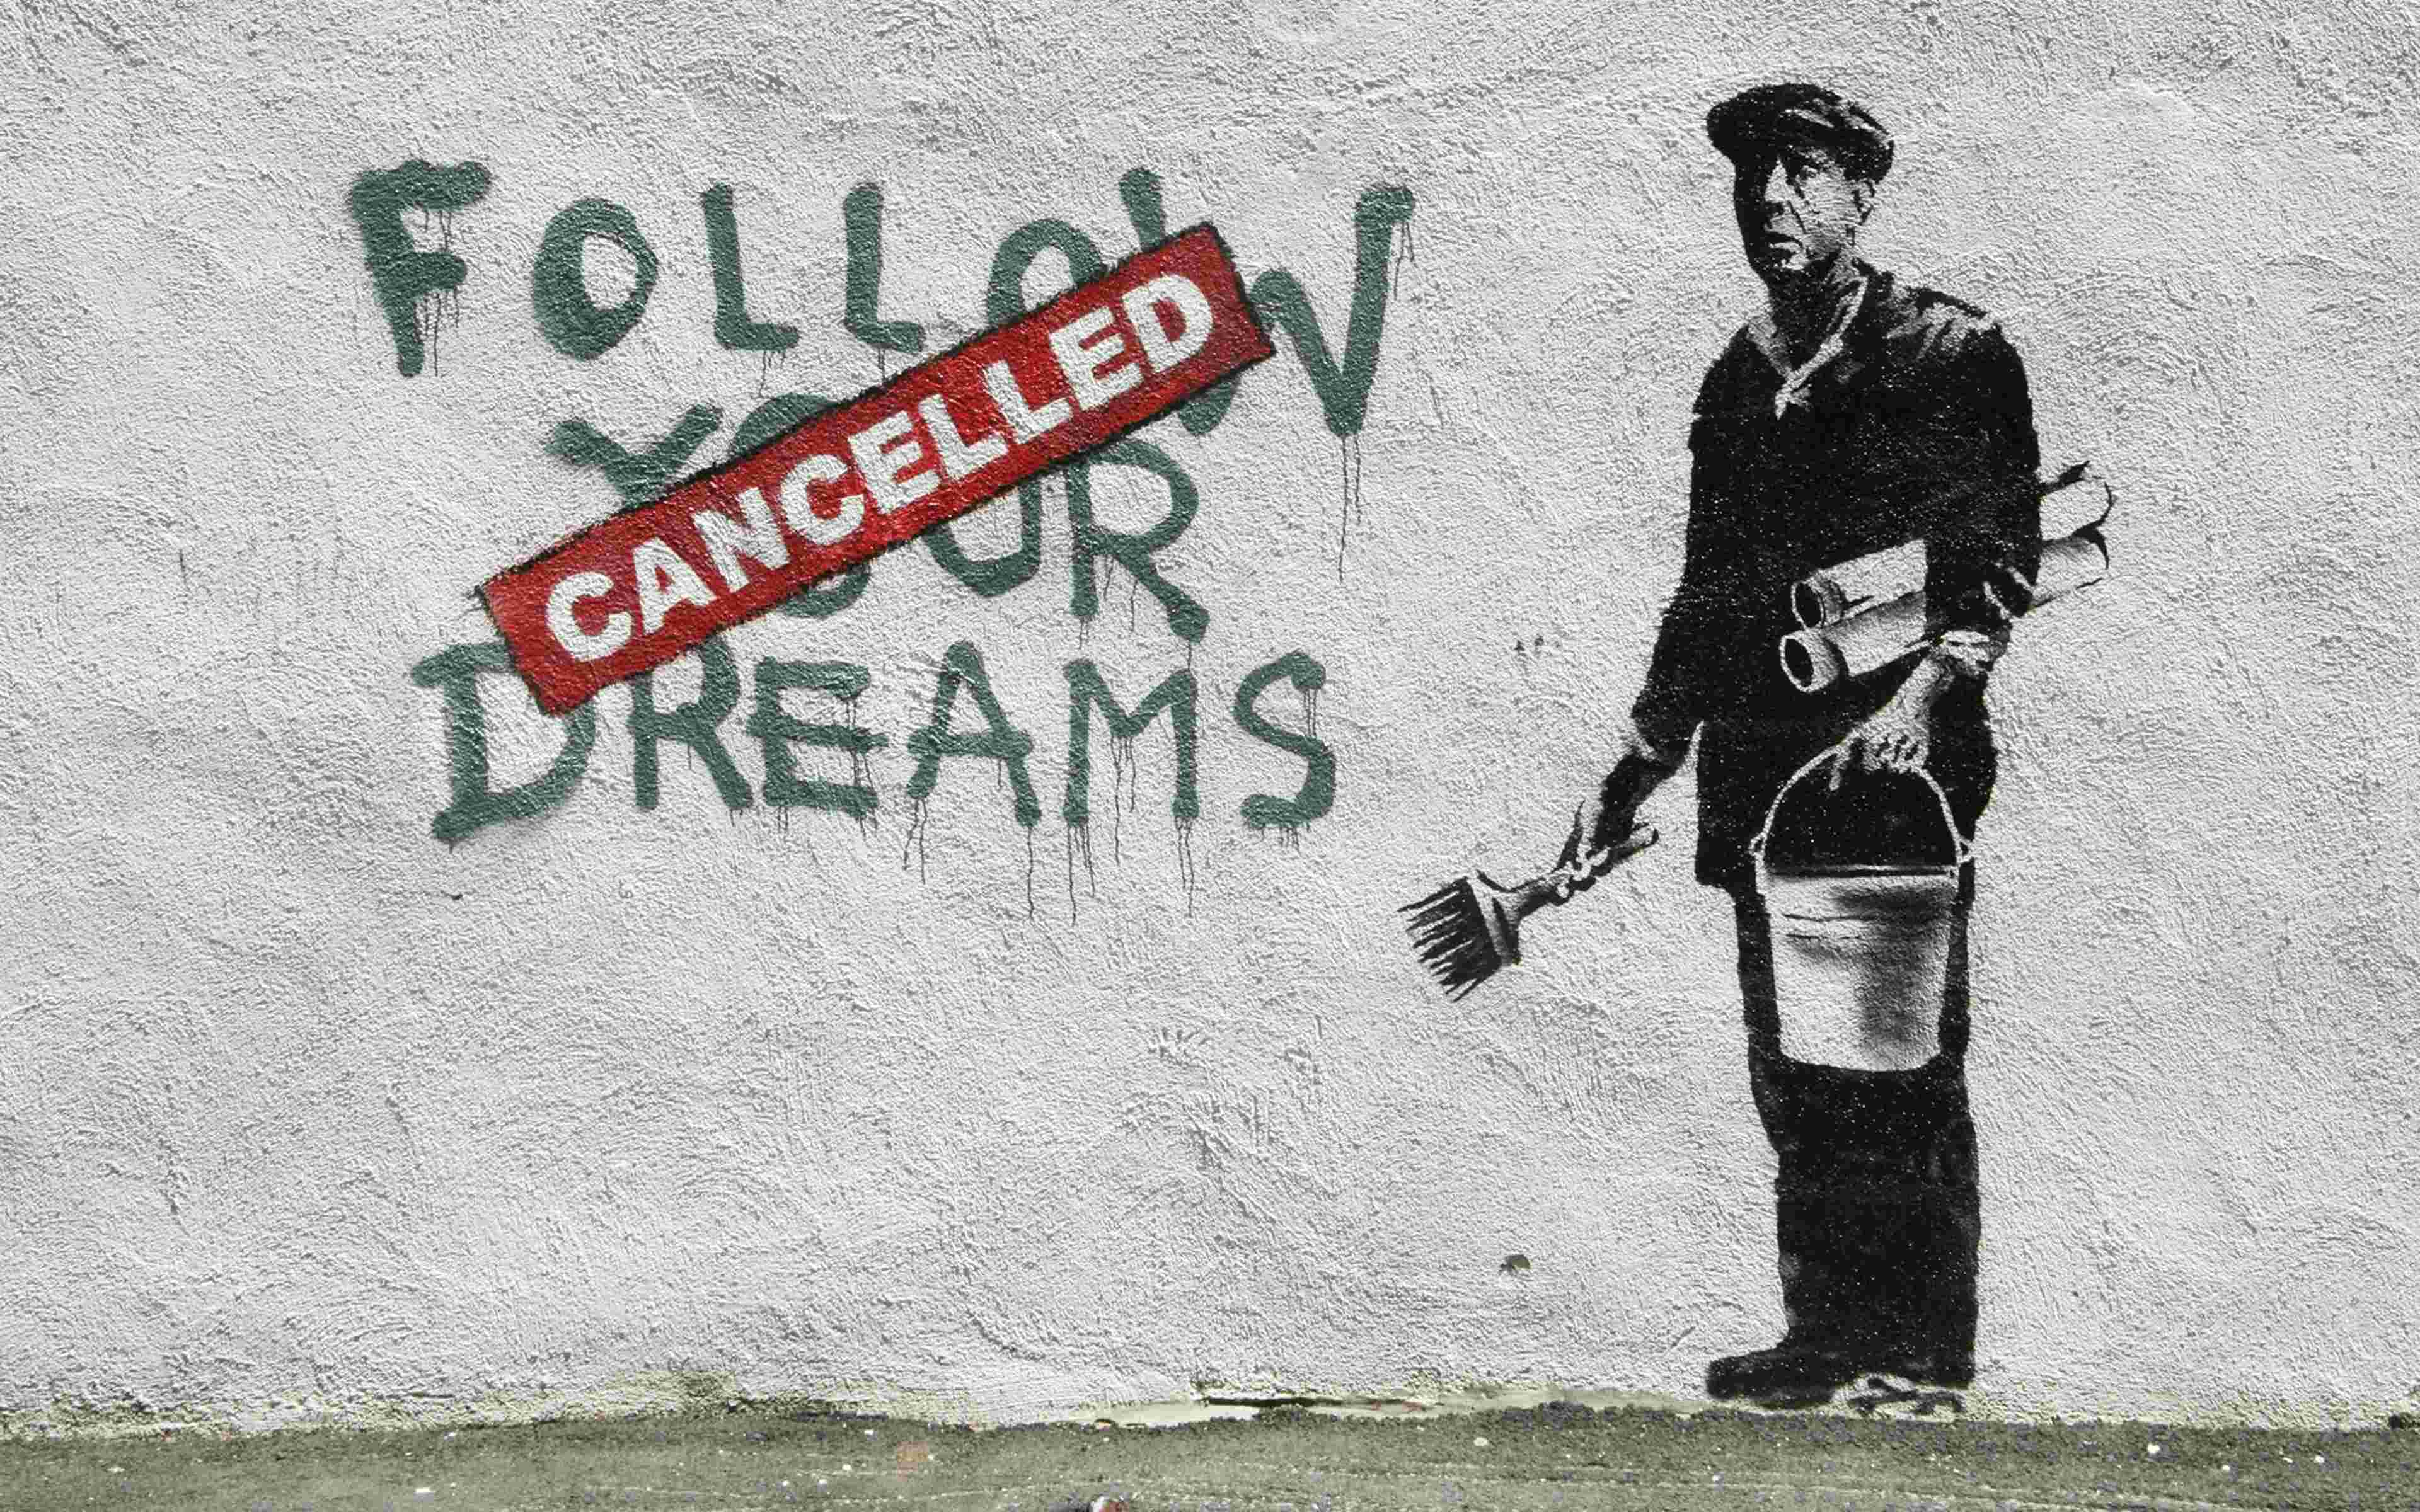 Banksy Follow your dreams (2010). Boston, Massachusetts